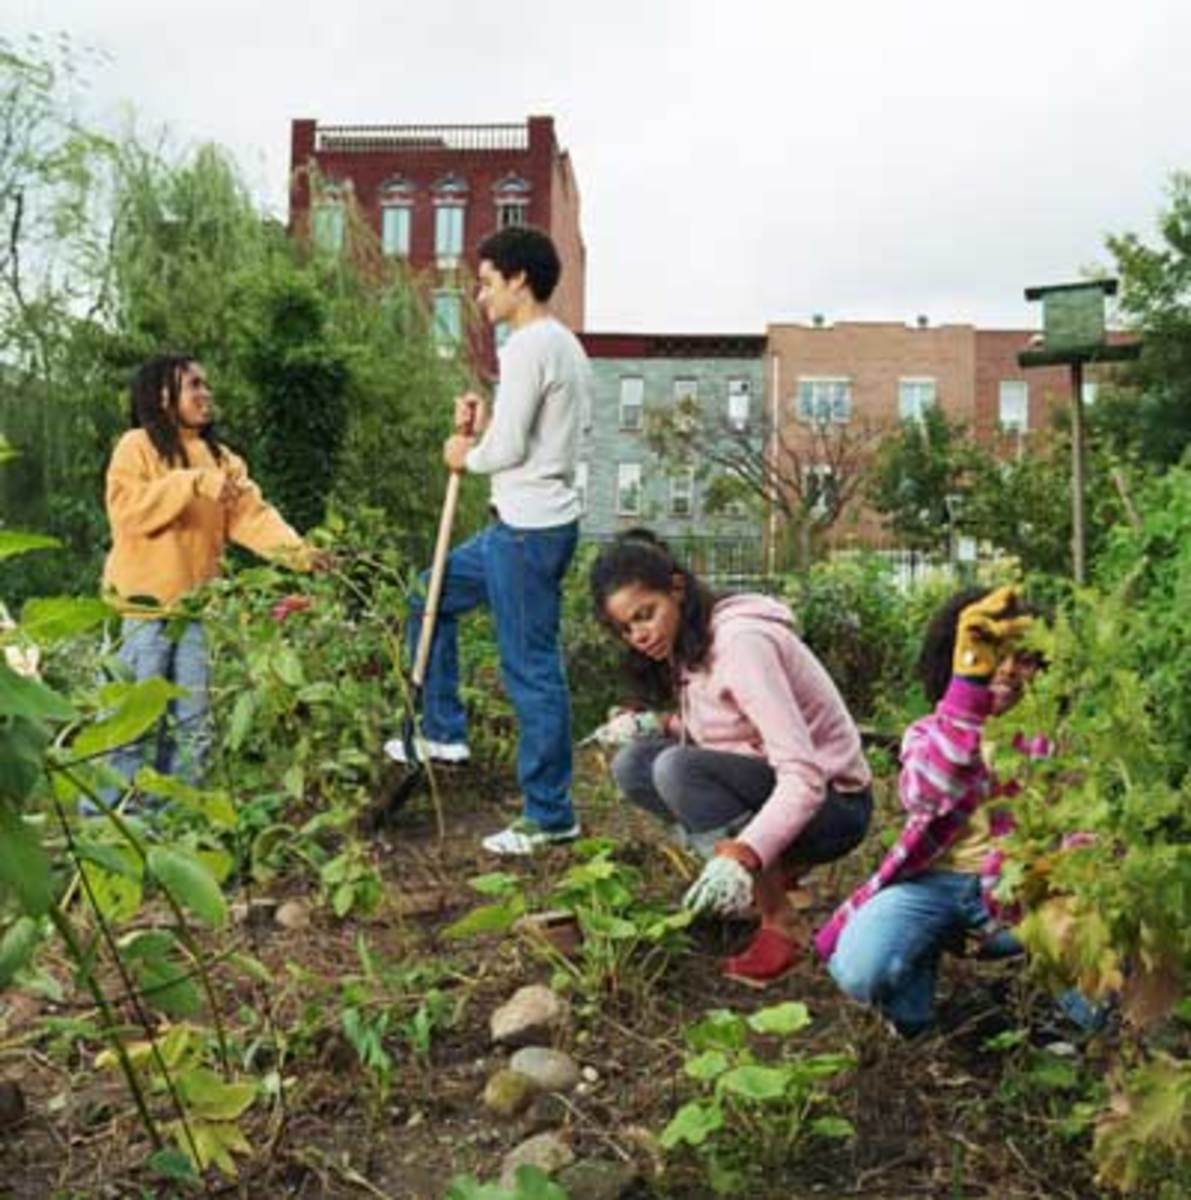 Permaculture emphasizes caring for the Earth, caring for people, and sharing resources.